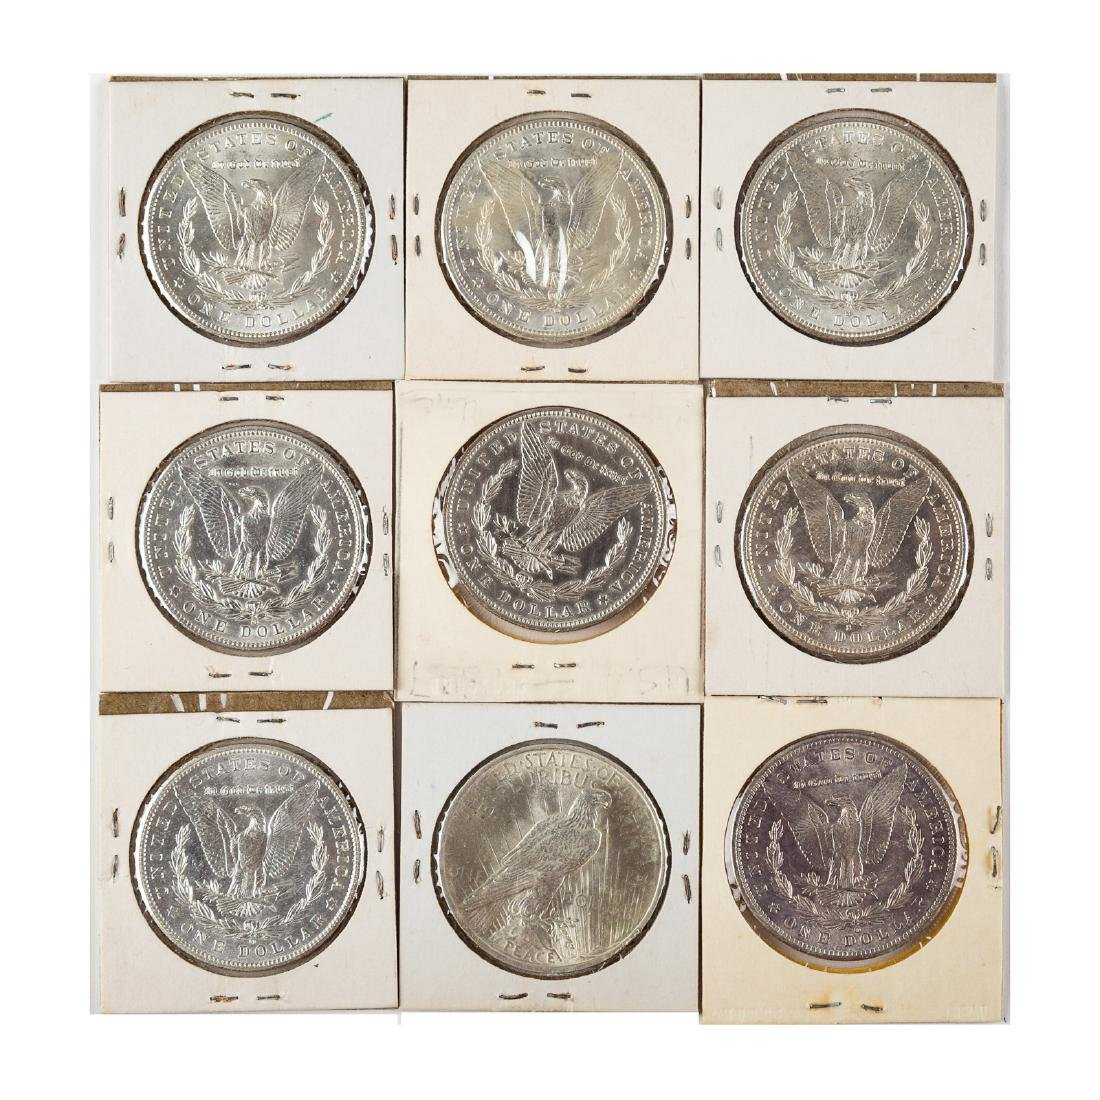 [US] Nine Uncirculated/Better Silver Dollars - 2